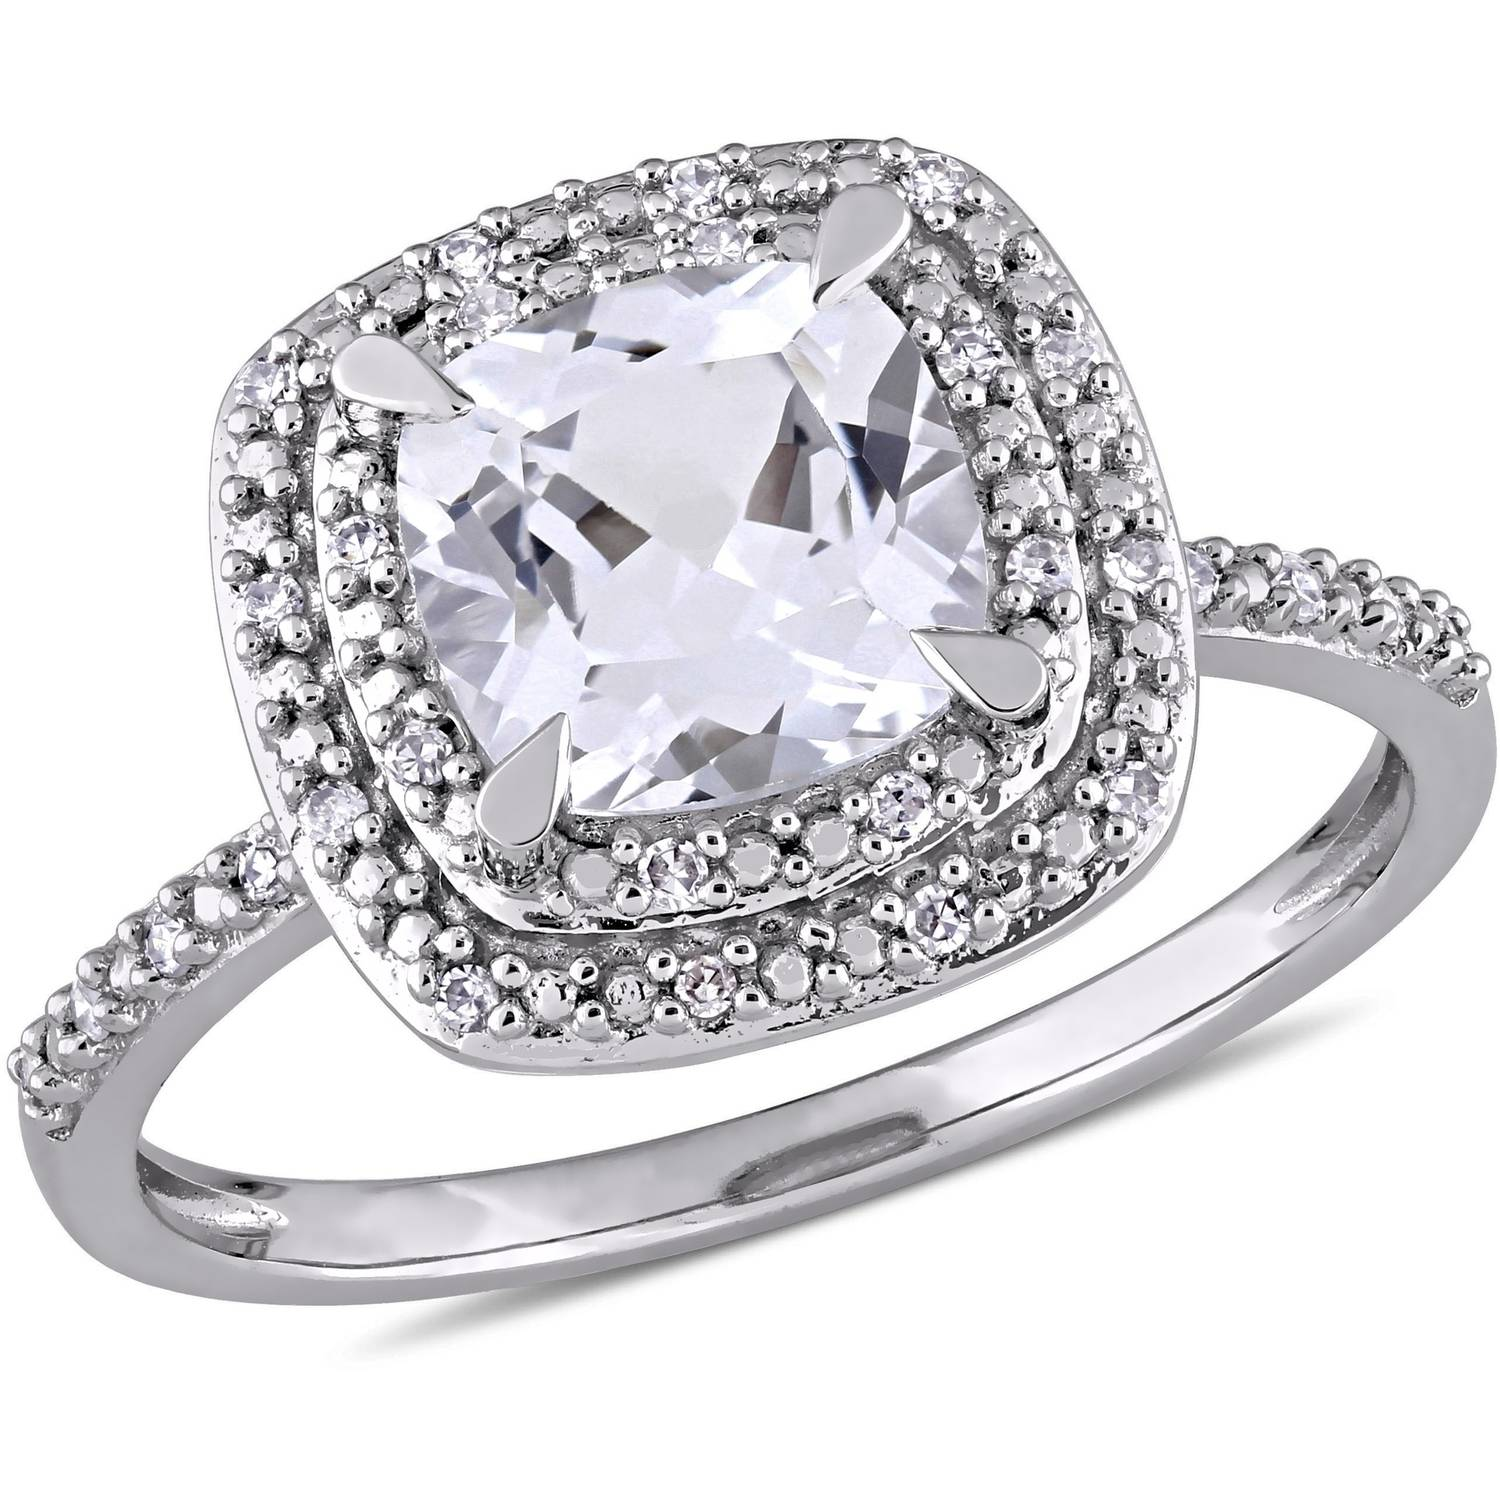 Miabella 2 Carat T.G.W. Created White Sapphire and 1 10 Carat T.W. Diamond 10kt White Gold Halo Engagement Ring by Miabella